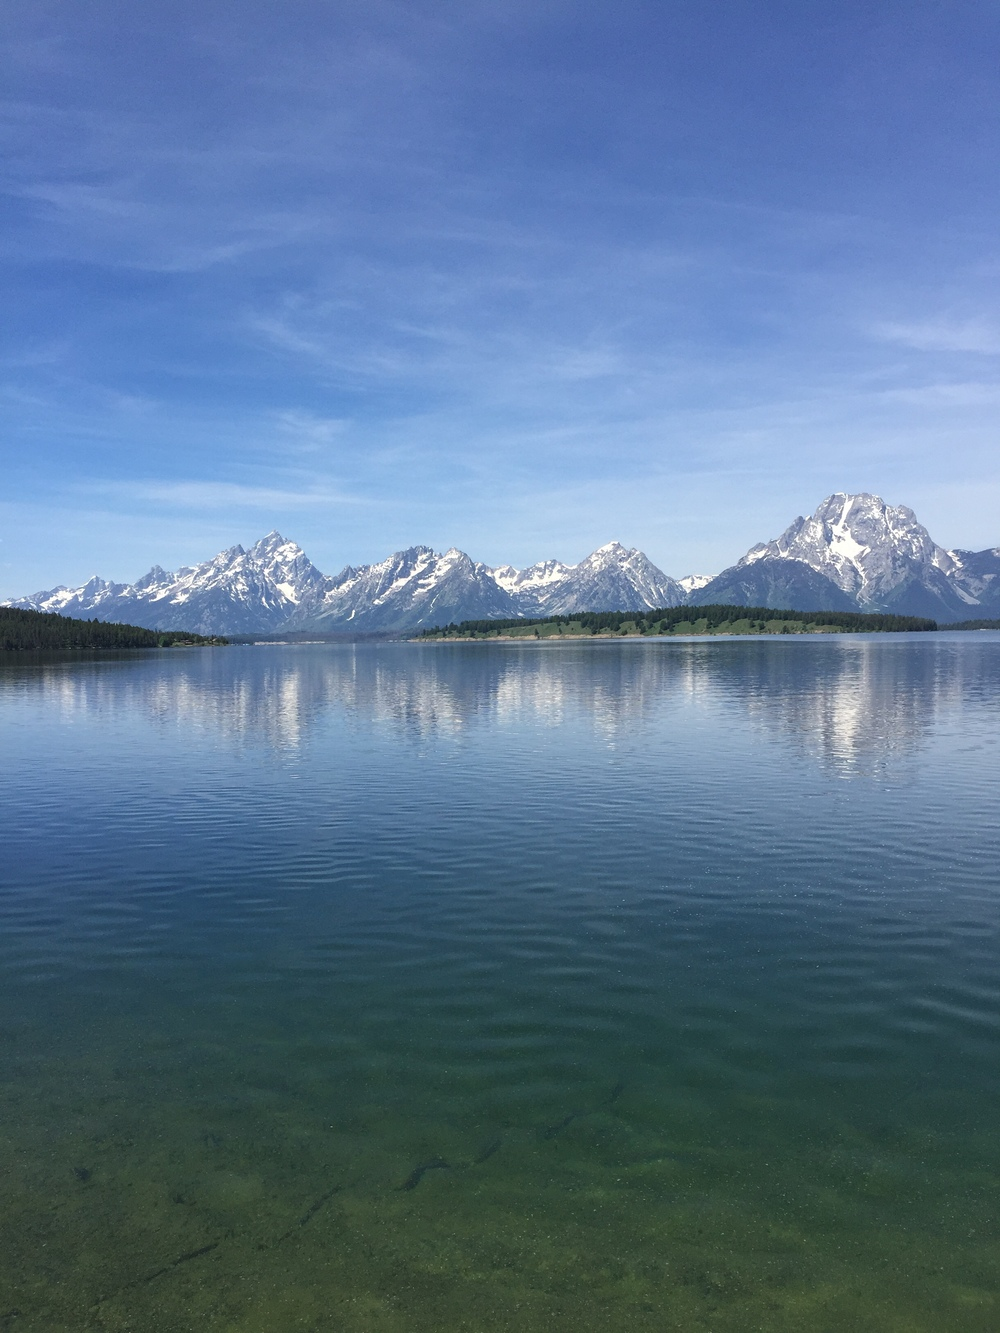 The Grand Tetons from across the lake within the park.